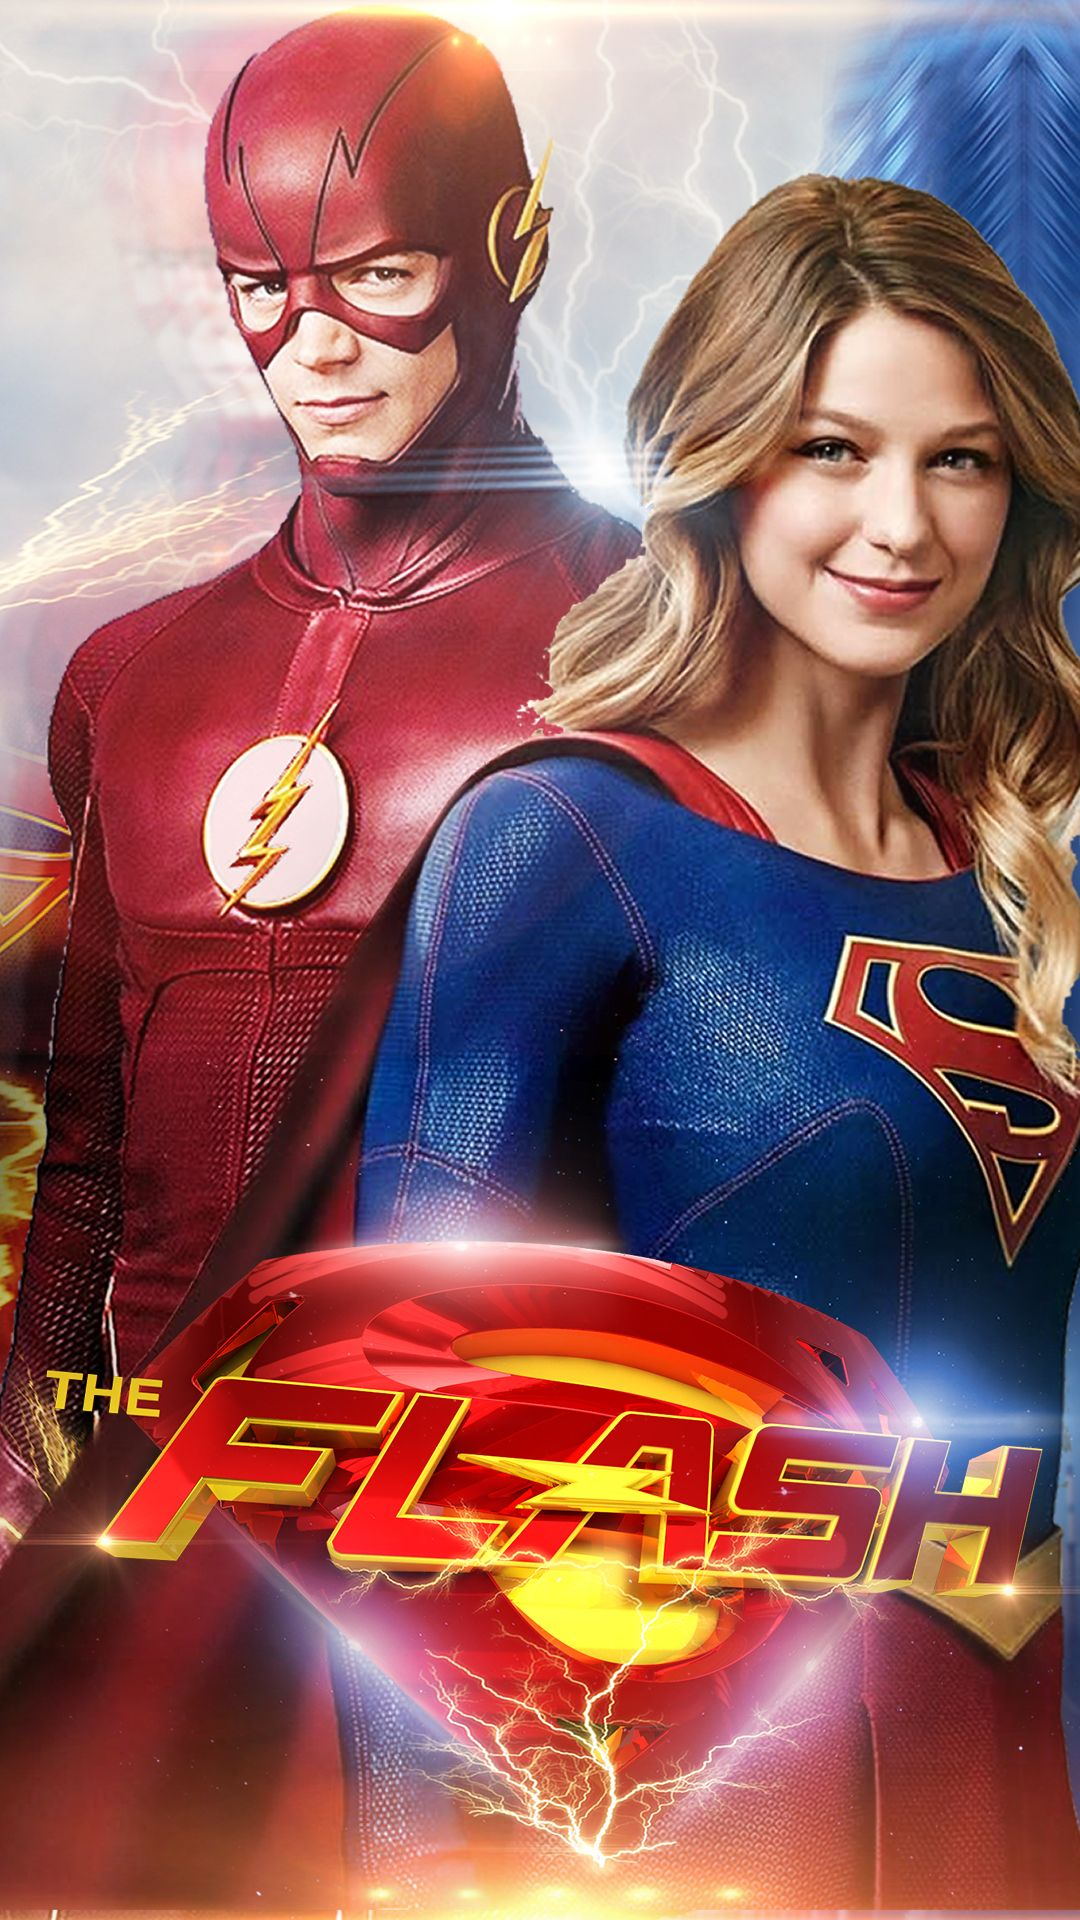 the flash and supergirl wallpaper - Google Search